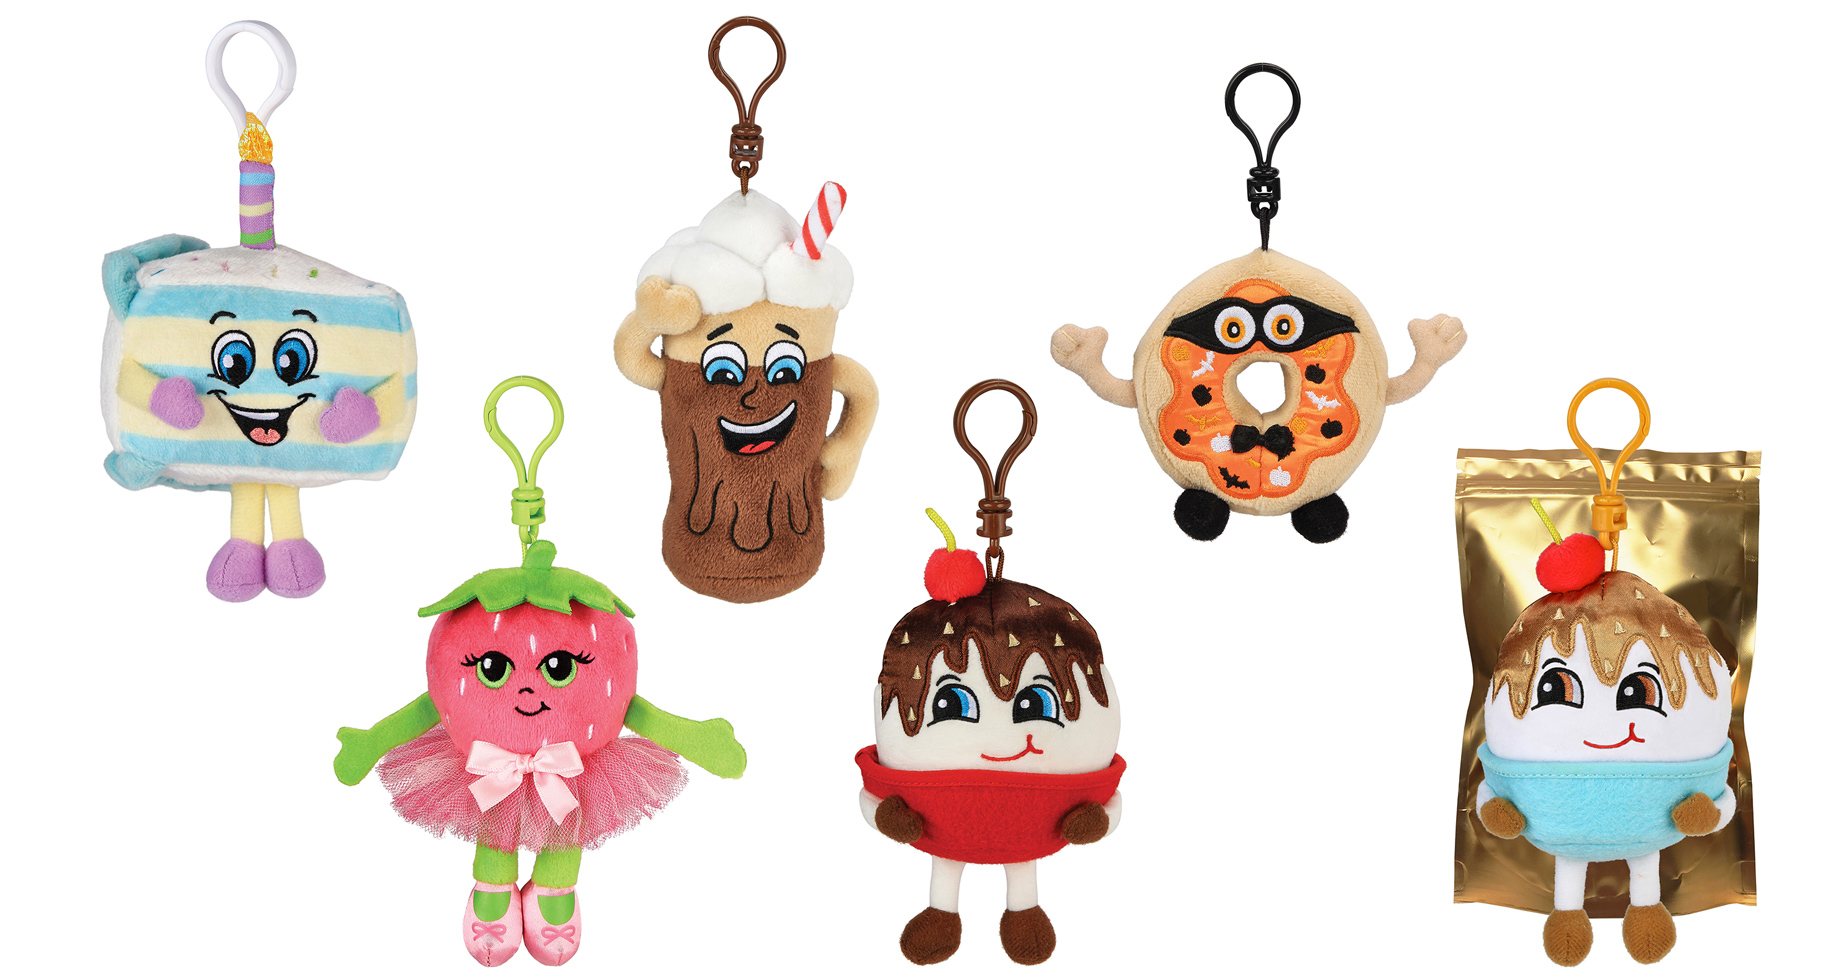 FOLLOW YOUR NOSE TO BOOTH 155 TO DISCOVER WHAT'S NEW AT ASTRA MARKETPLACE From Birthday Cake Jake to Marty McPie, Whiffer Sniffers Does It Again With Series 5 Must-Have Backpack Clips Just In Time For Back-To-School